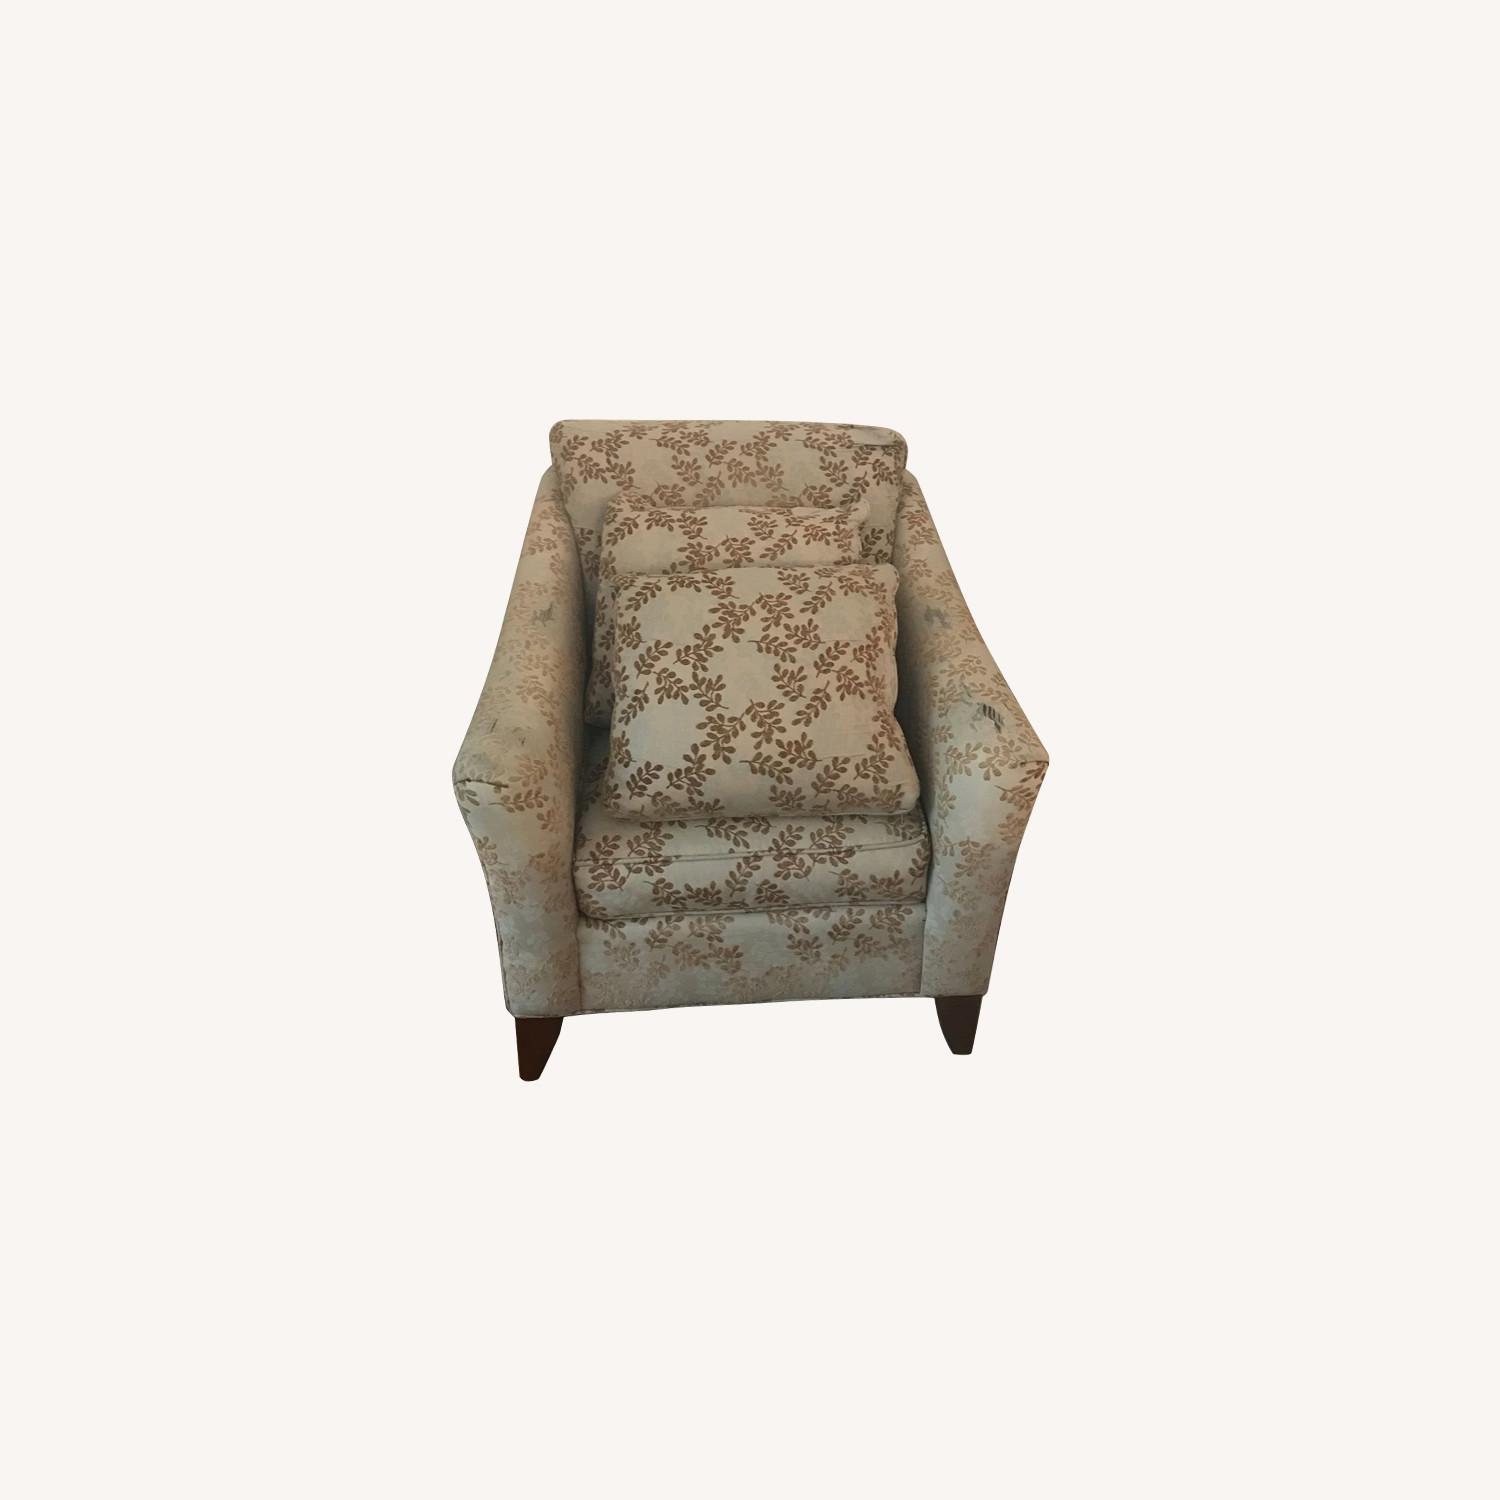 2 Ethan Allen Neutral Patterned Arm Chairs - image-0